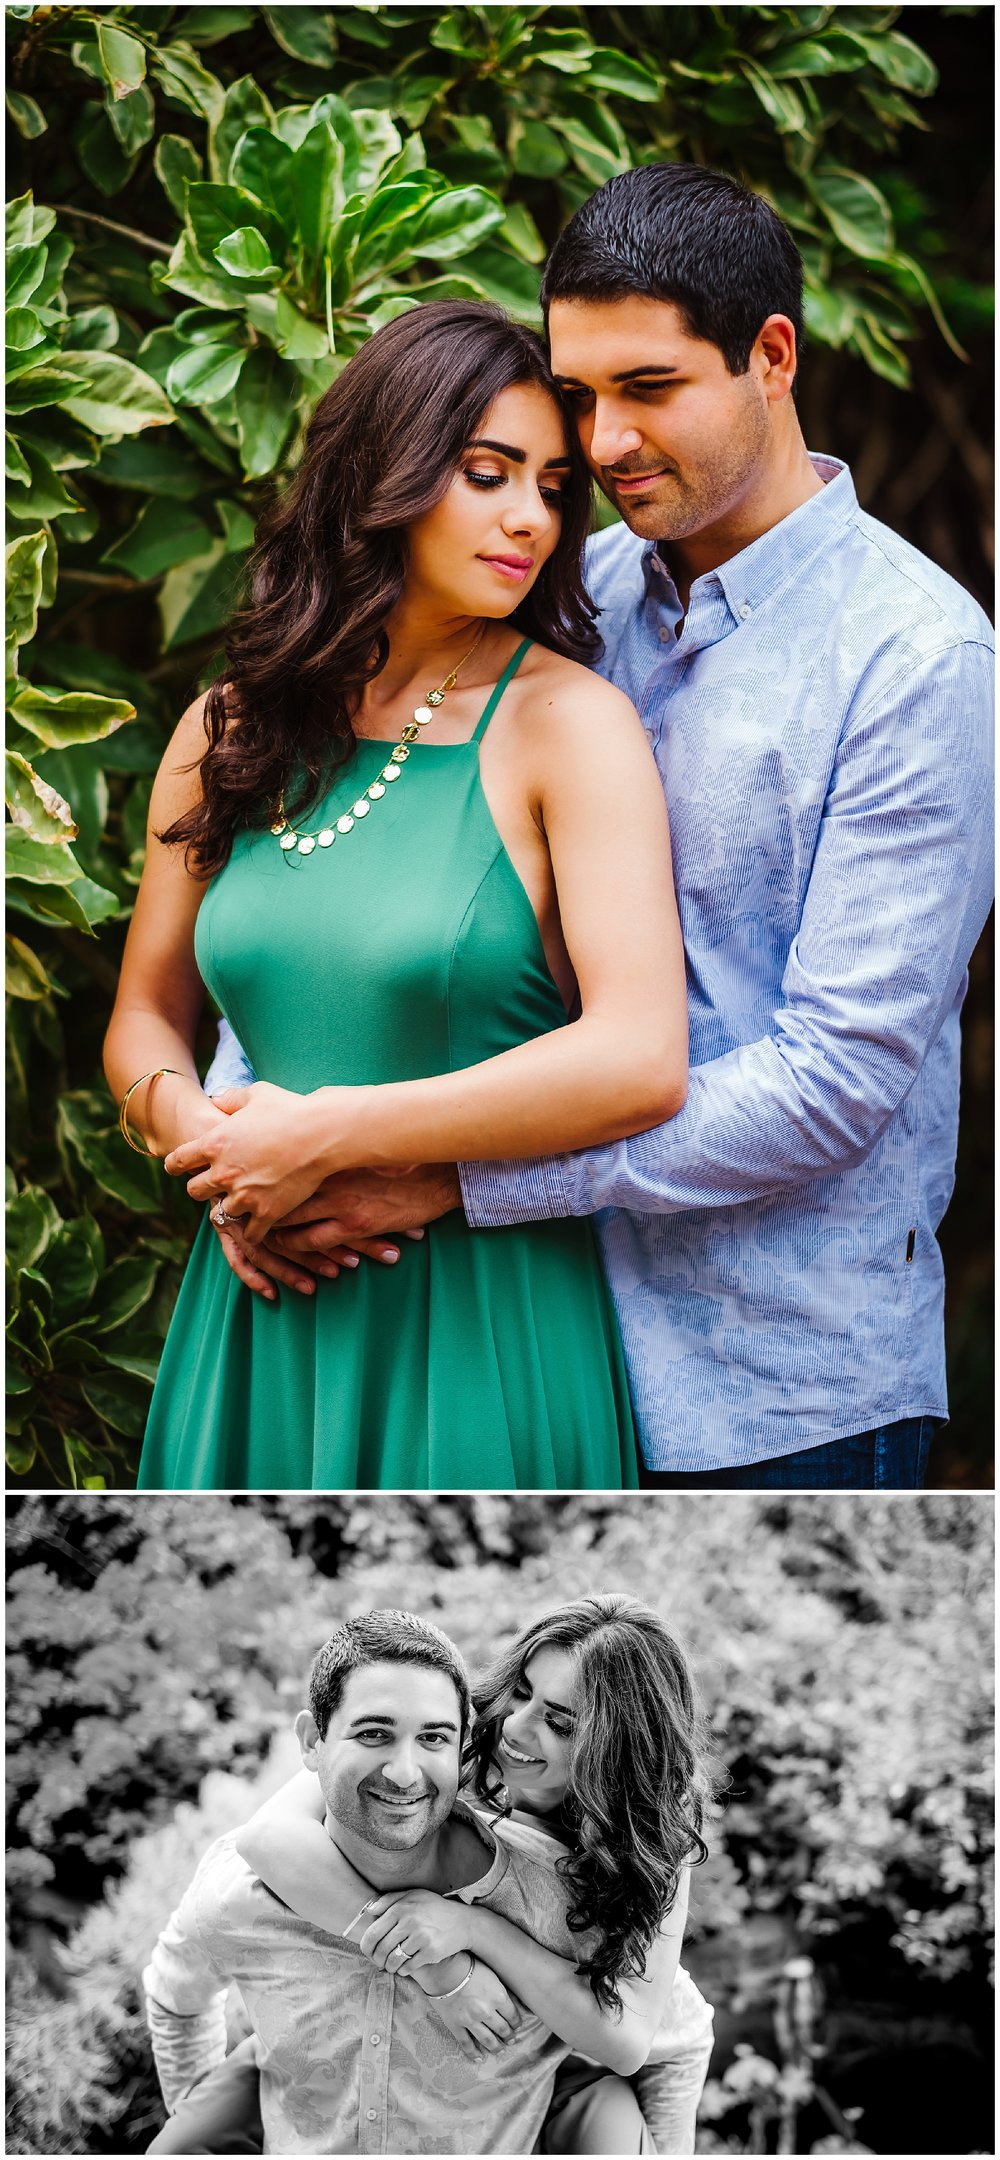 sunken-gardens-engagement-session-photos-teal-flamingos_0006.jpg